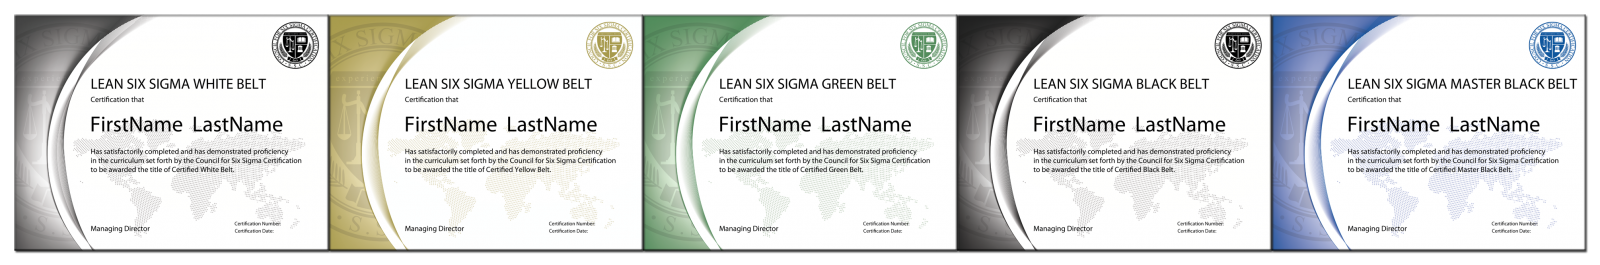 Six sigma certification online lean six sigma accreditation whether you are looking for a lean six sigma black belt certification or a six sigma green belt certification our certifications are the trusted industry 1betcityfo Image collections